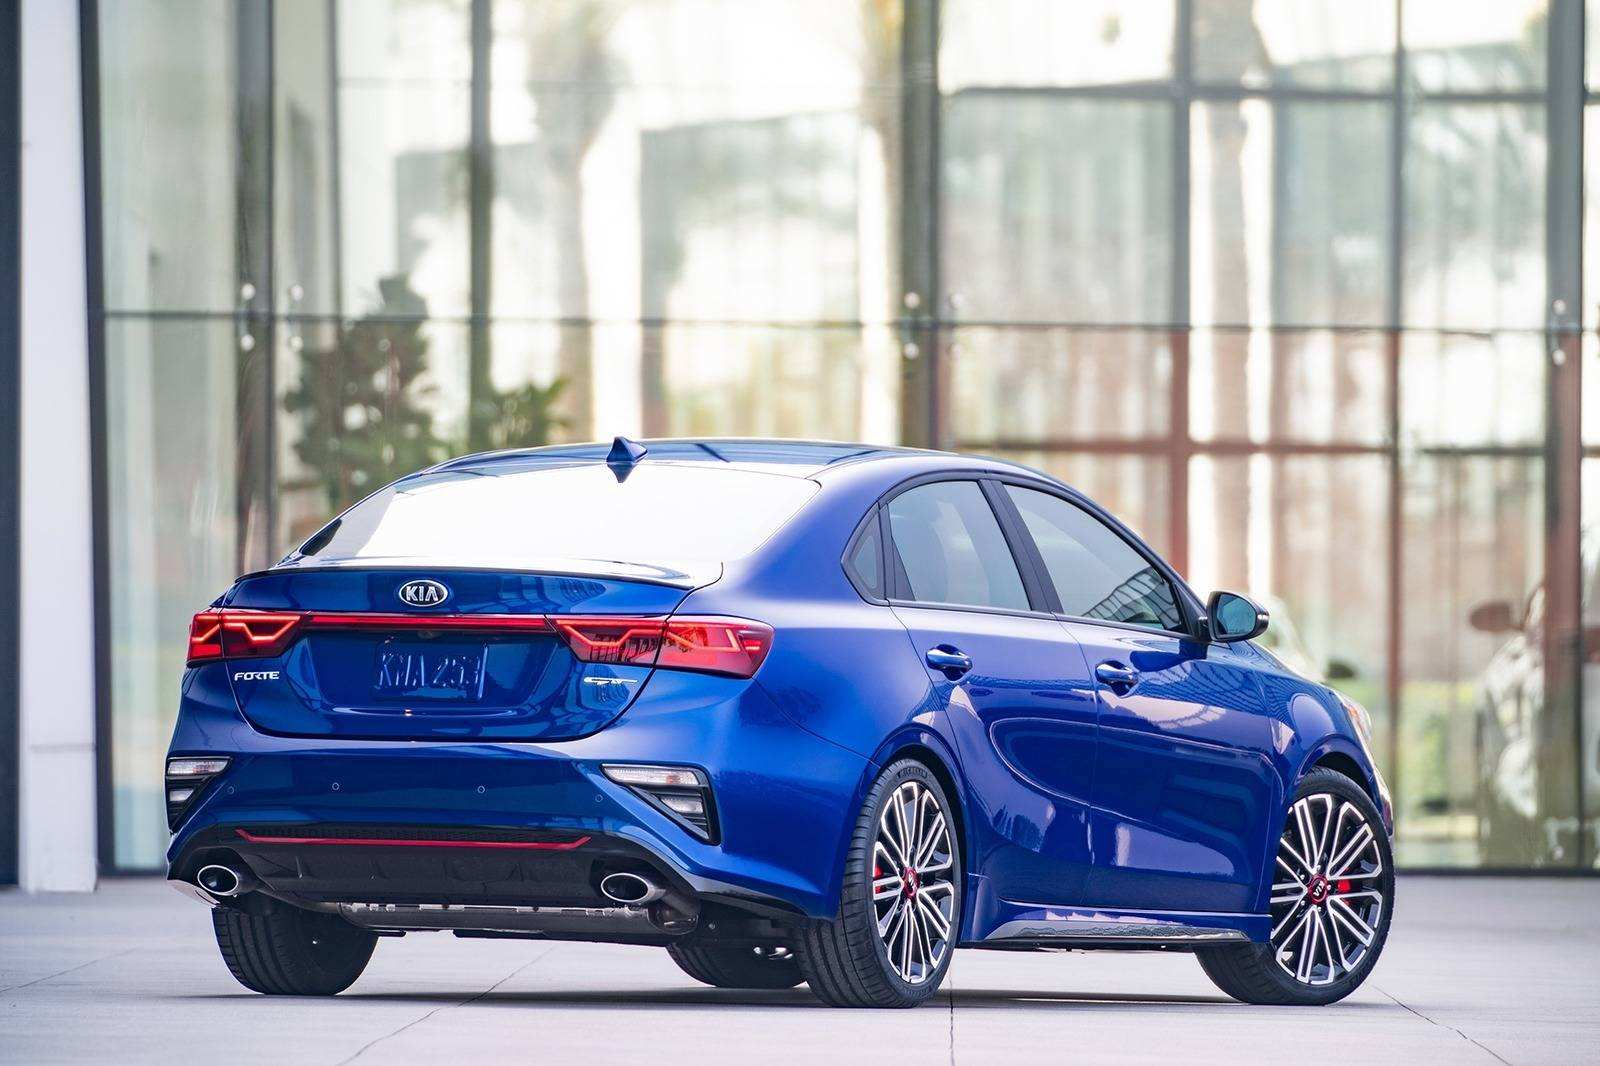 72 Gallery of 2020 Kia Forte Hatchback Style with 2020 Kia Forte Hatchback